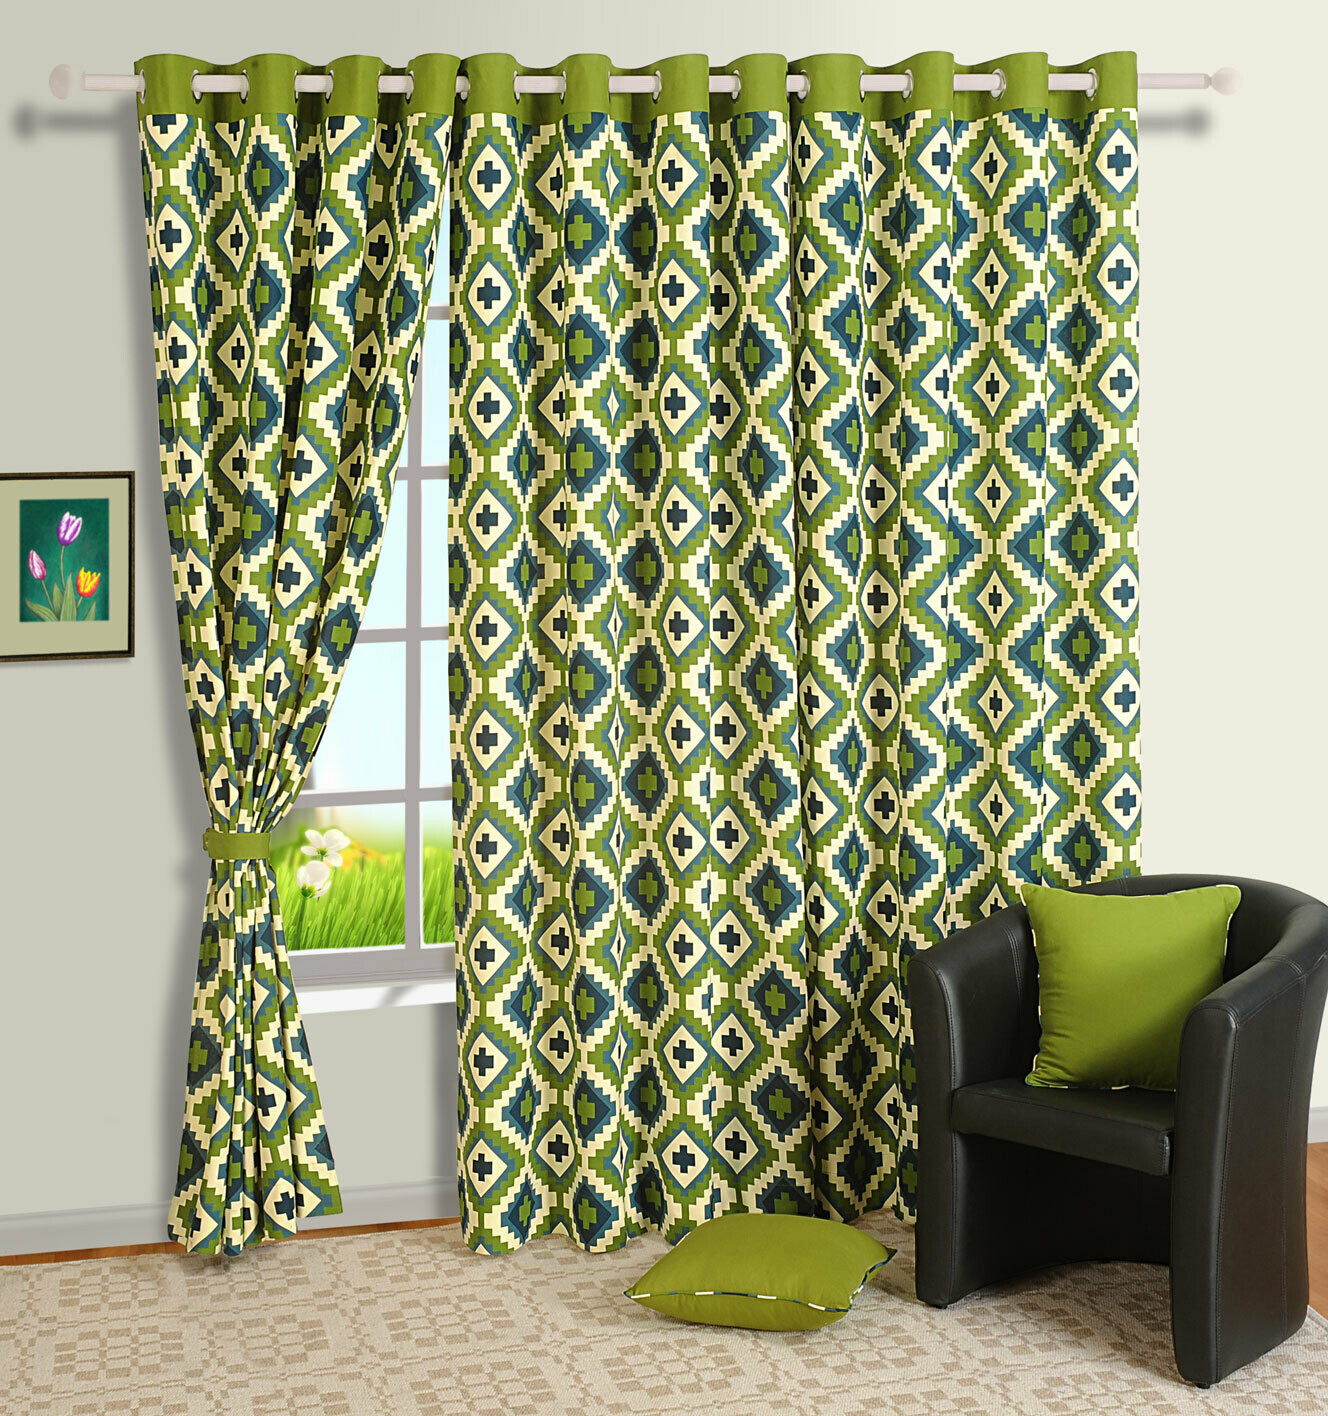 Swayam Green Colour Geometrical Printed Eyelet Curtain for Window